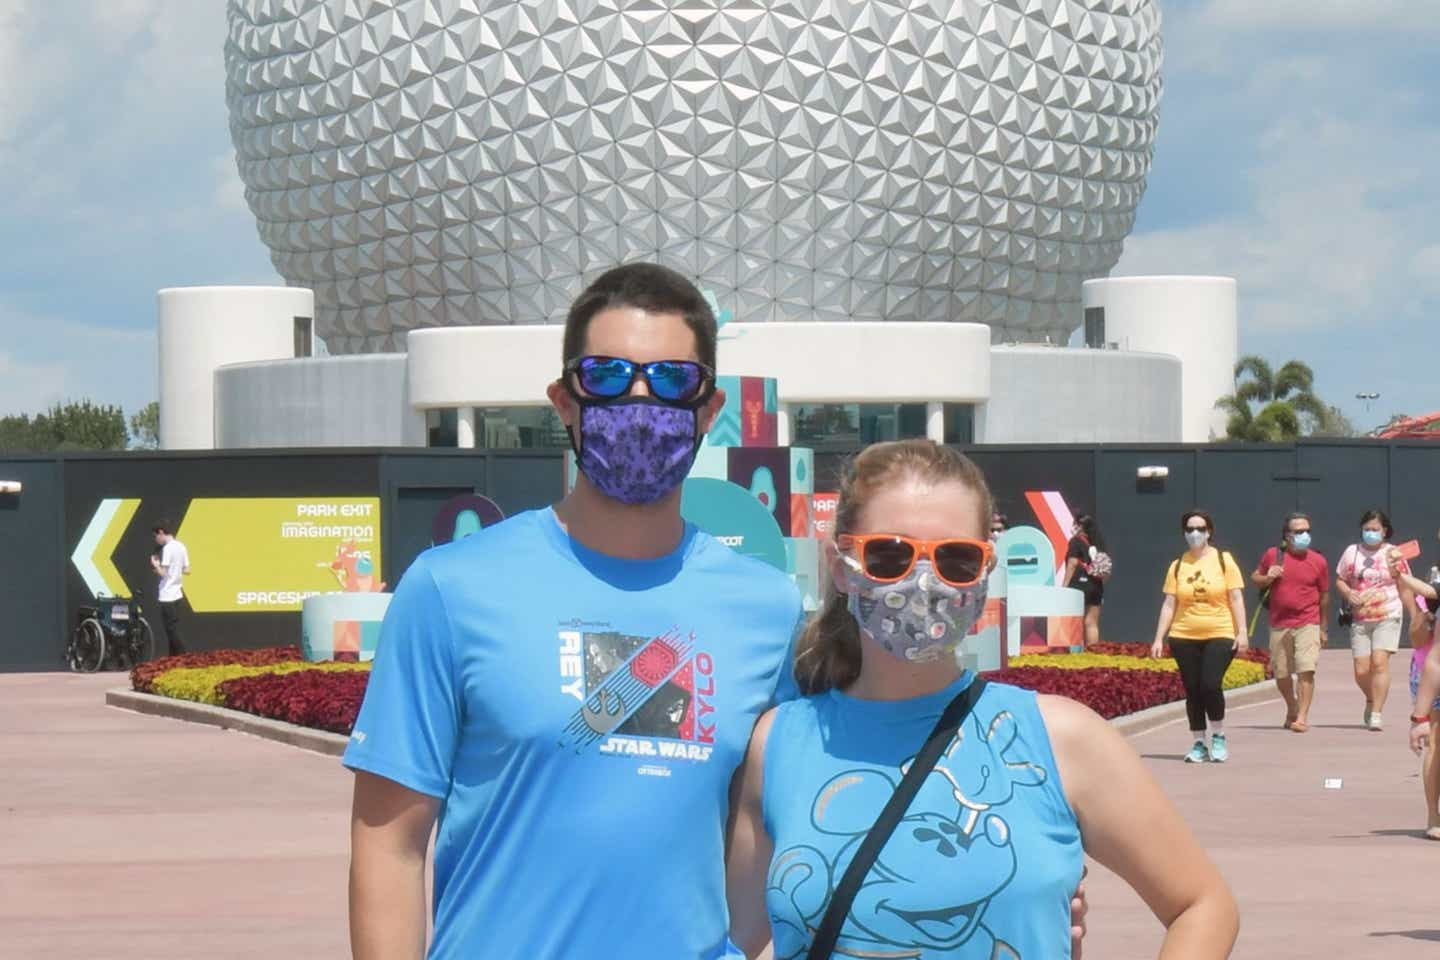 Featured author, Jessica Salina, and her Husband stand in front of Spaceship Earth at EPCOT at Walt Disney World resort.